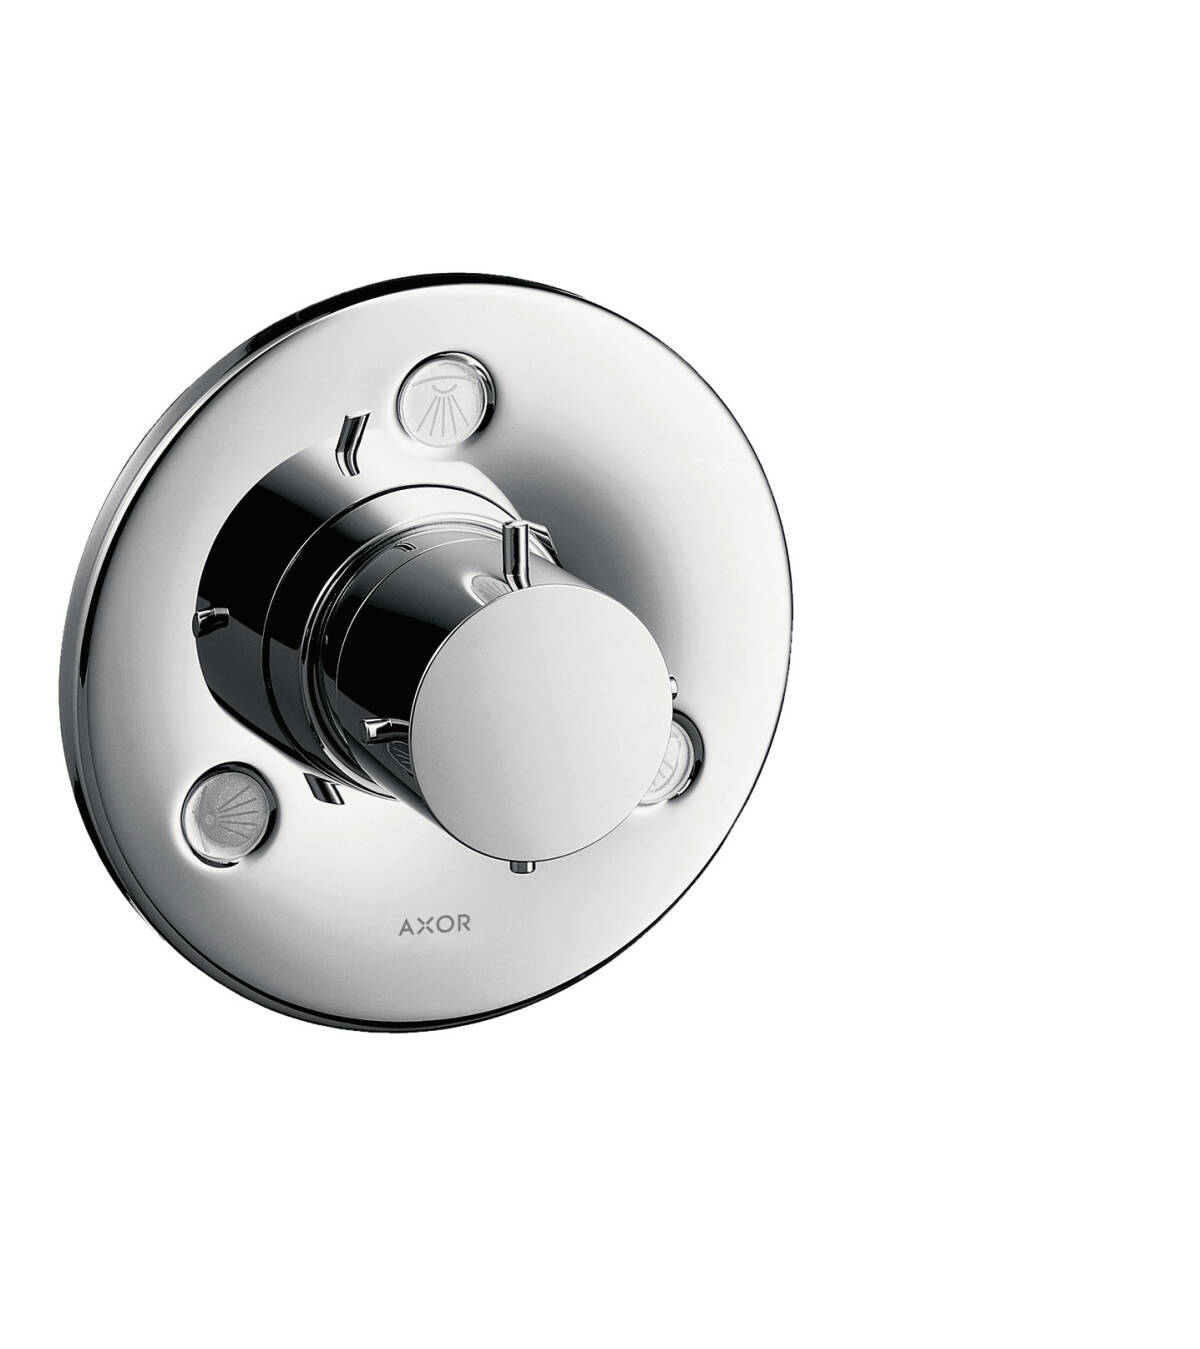 Shut-off/ diverter valve Trio/ Quattro for concealed installation, Chrome, 10930000